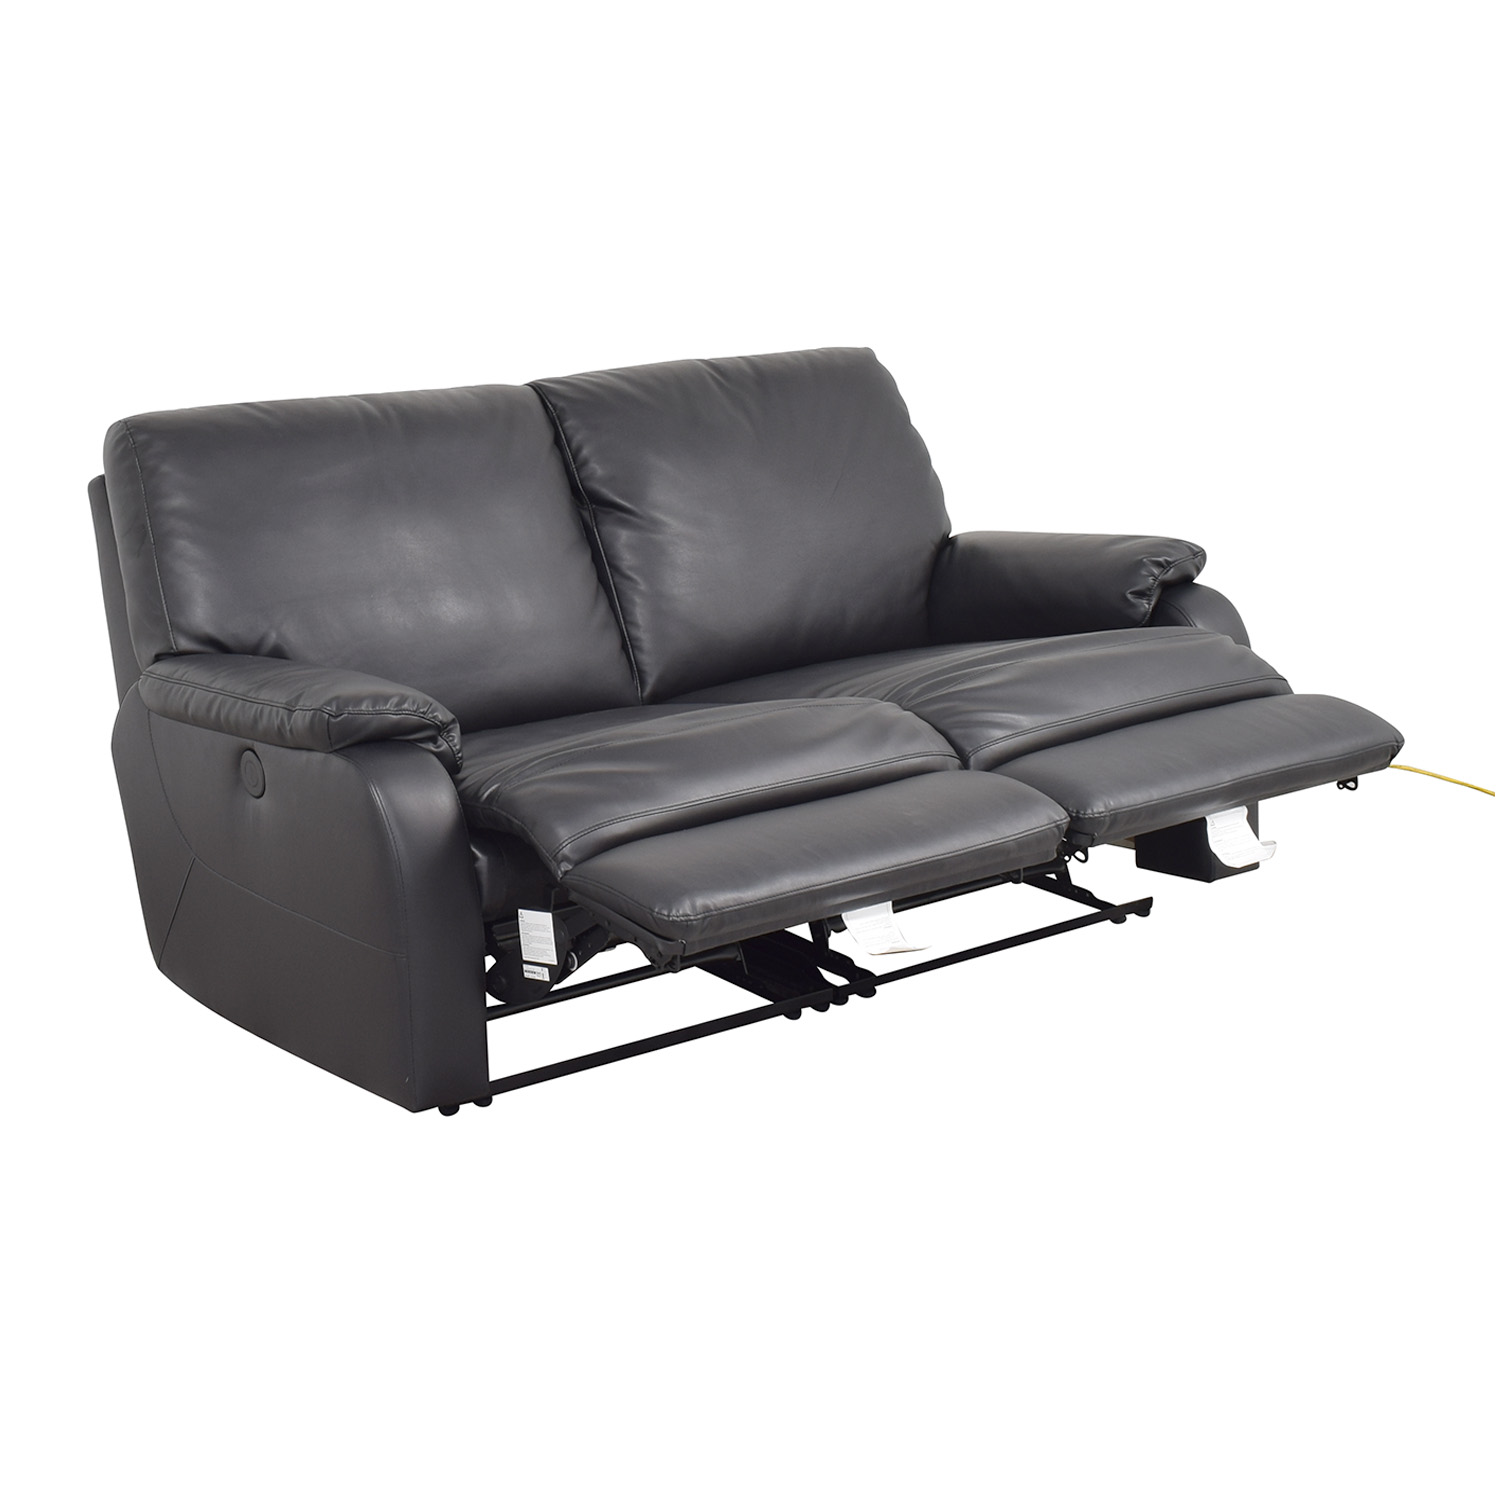 IKEA IKEA Tomback Sofa coupon